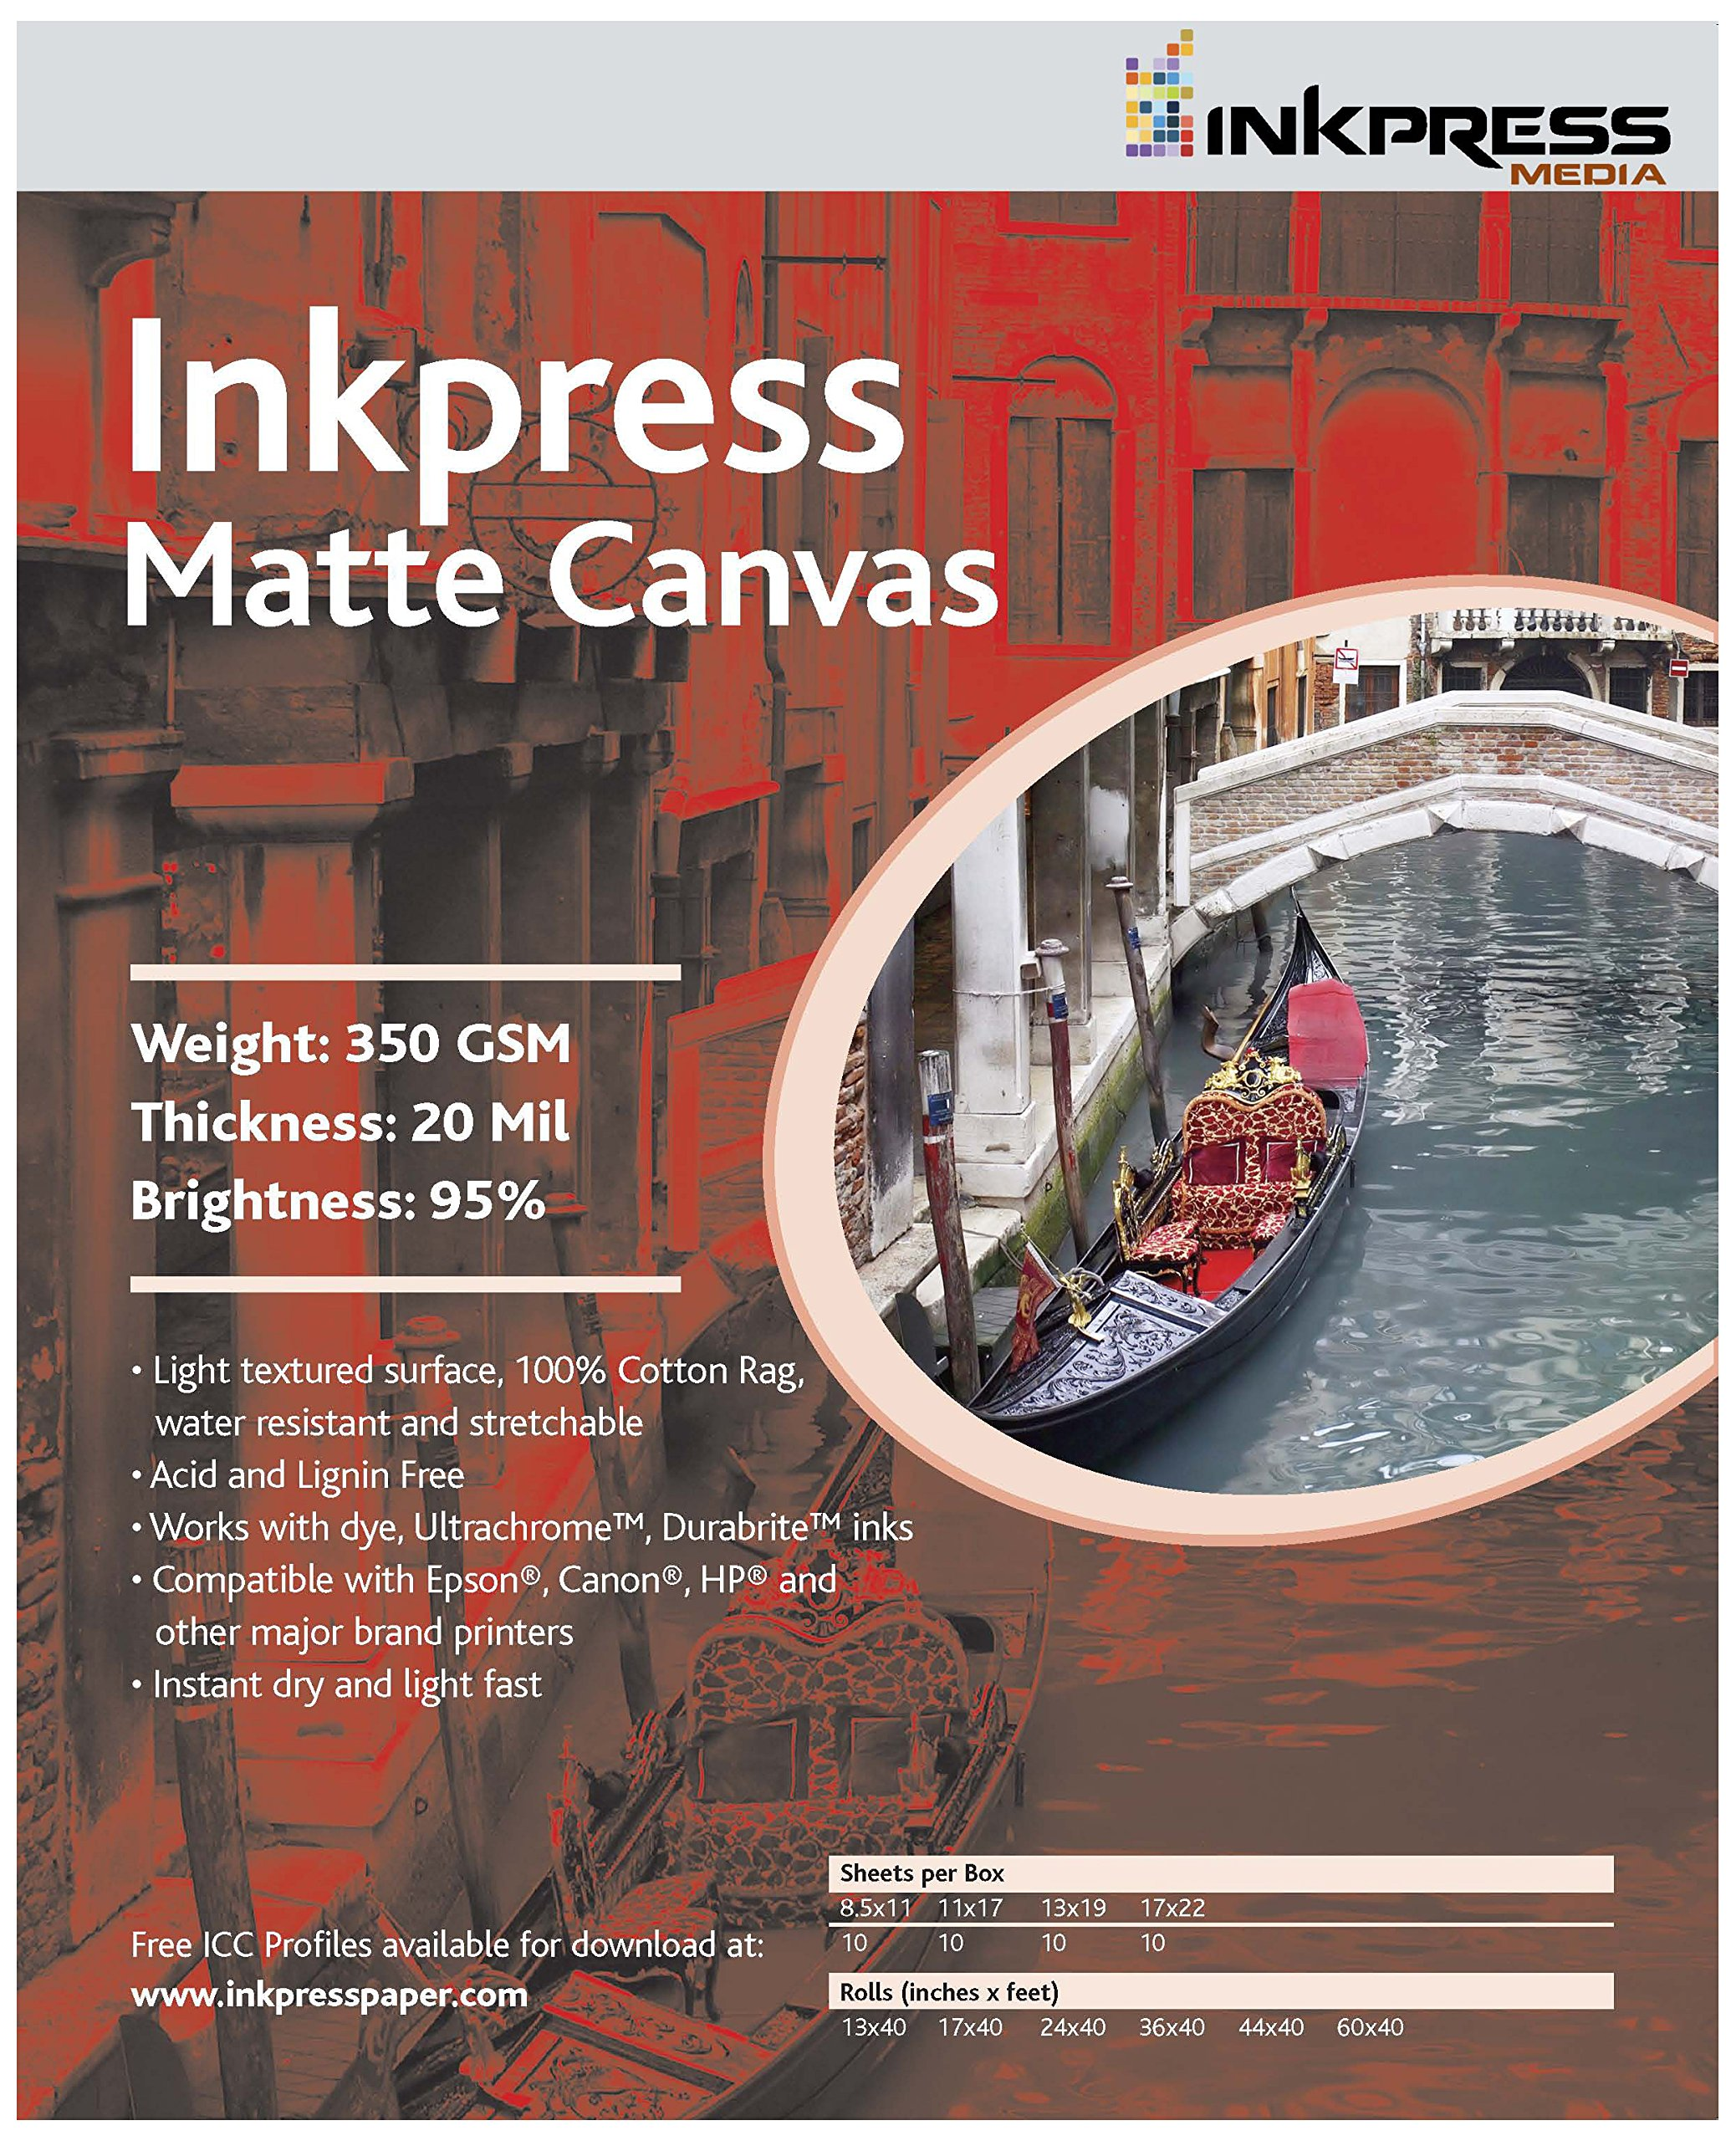 INKPRESS MEDIA 350Gsm 20Mil 95% Bright Matte Canvas (#ACW3635TO) by INKPRESS MEDIA